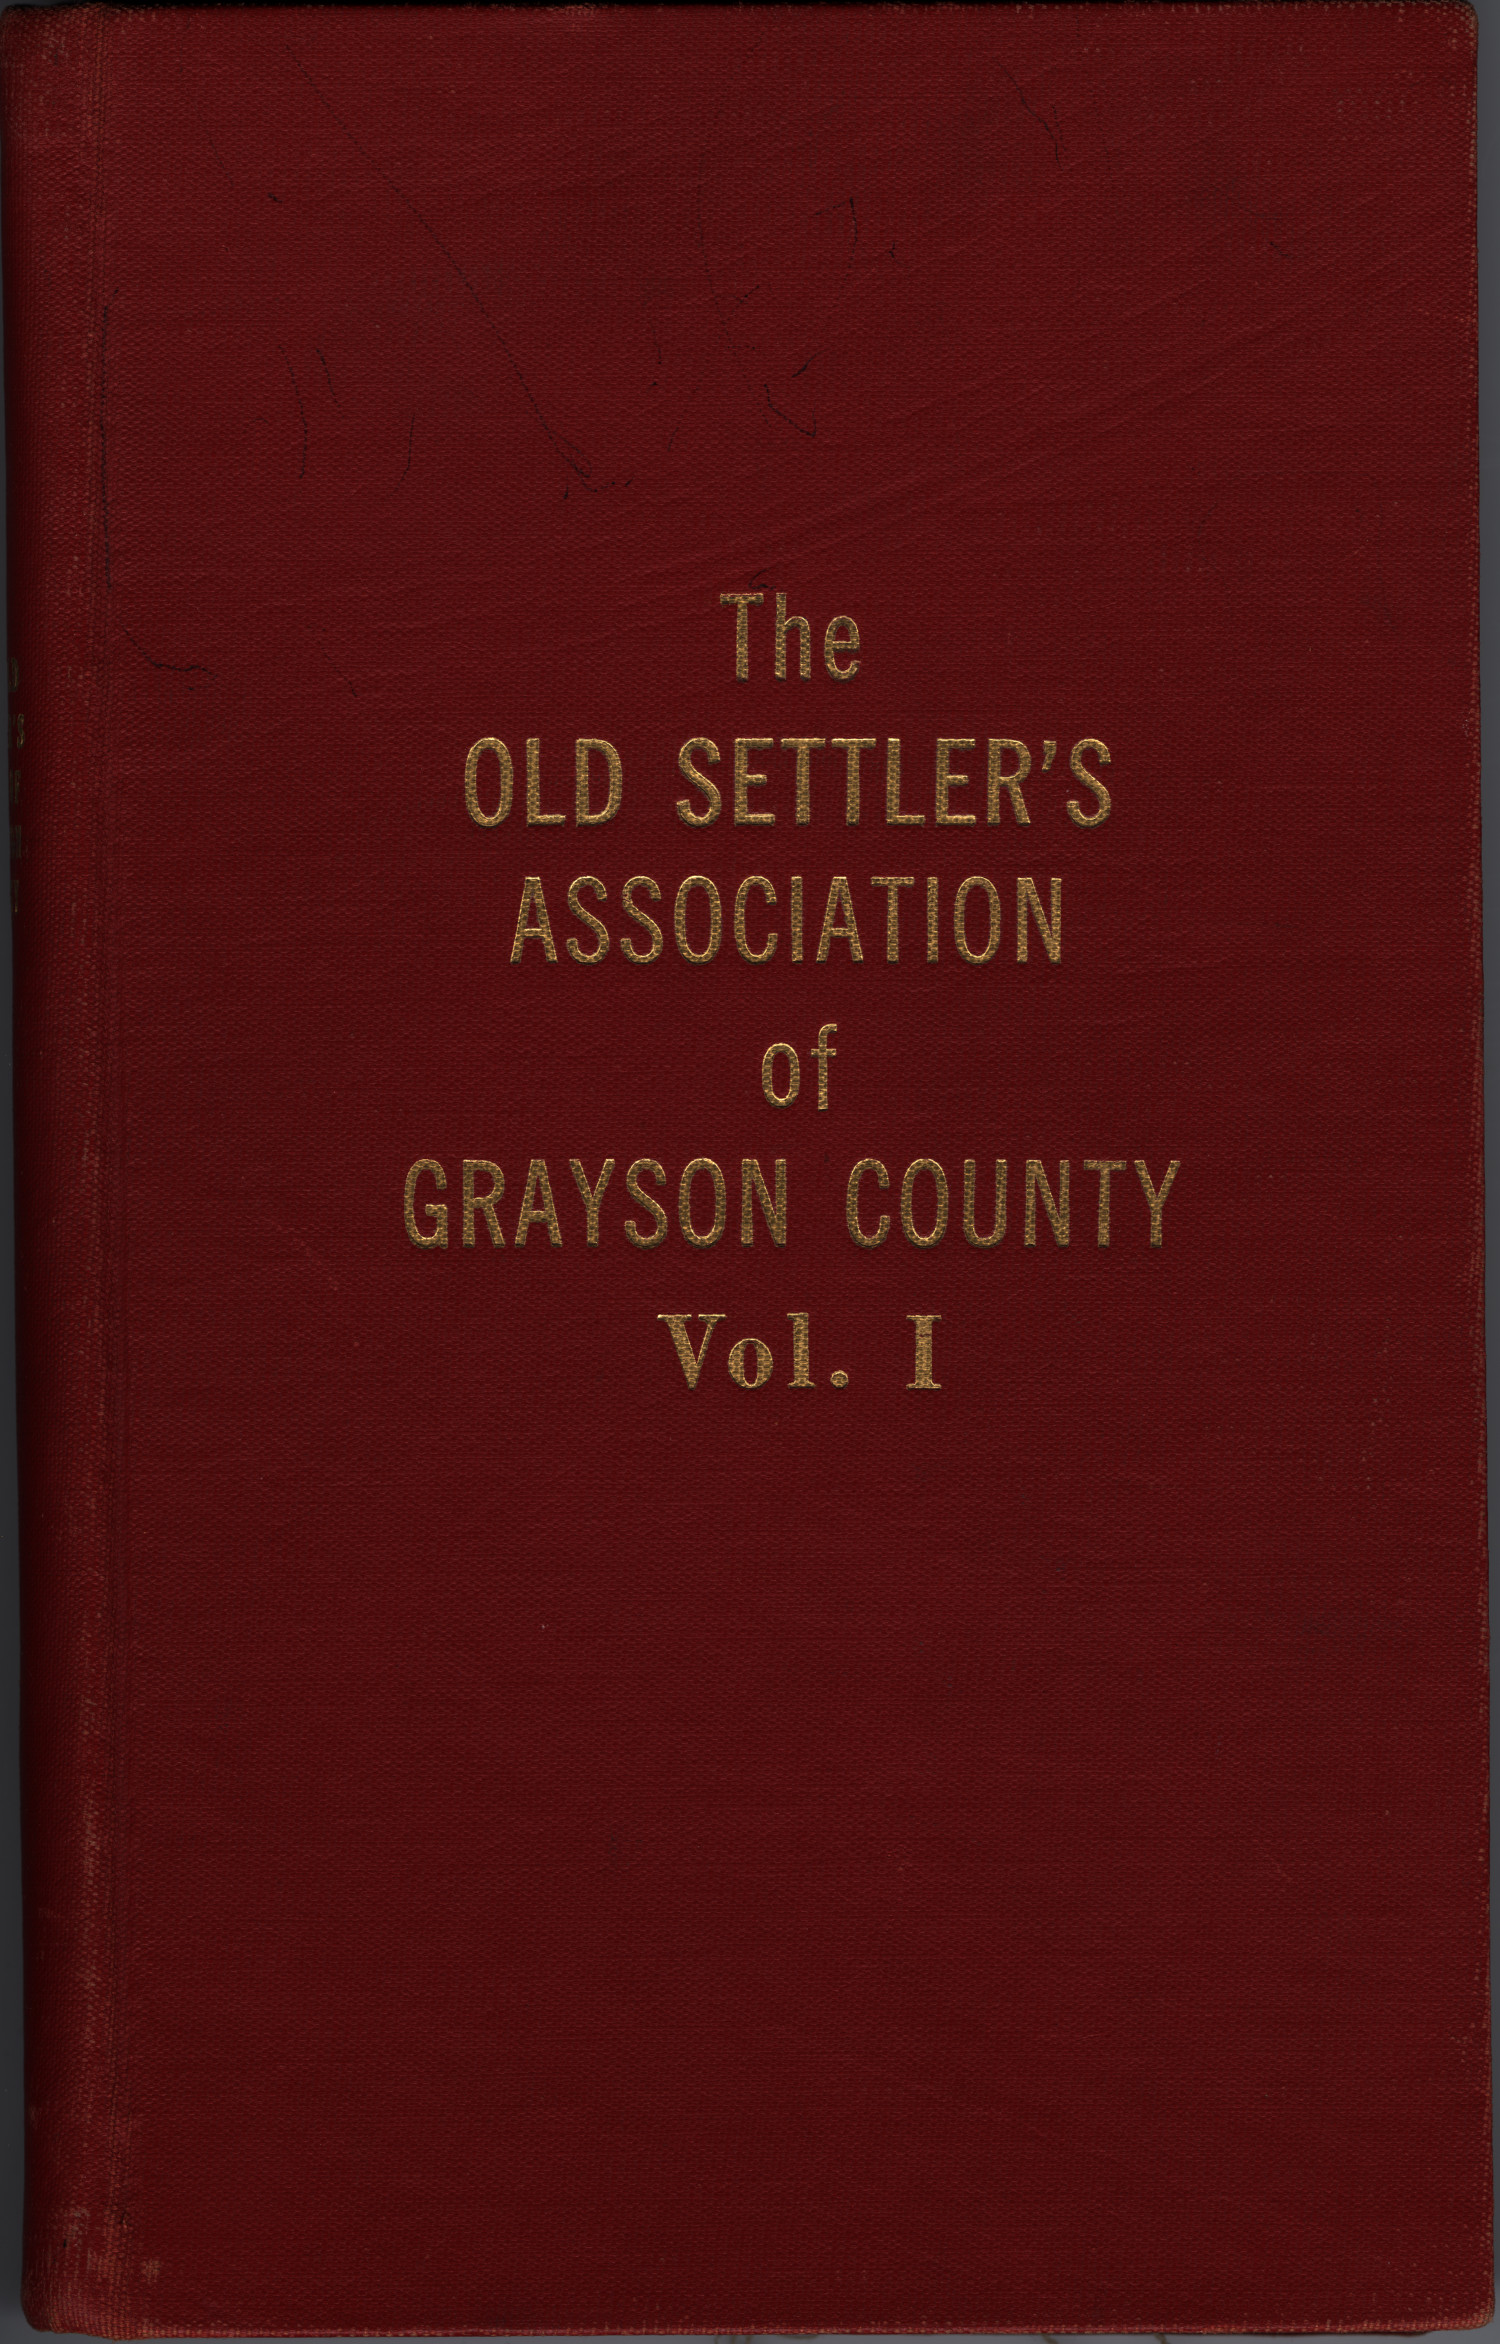 Old Settler's Association of Grayson County, Vol. 1.                                                                                                      [Sequence #]: 1 of 322